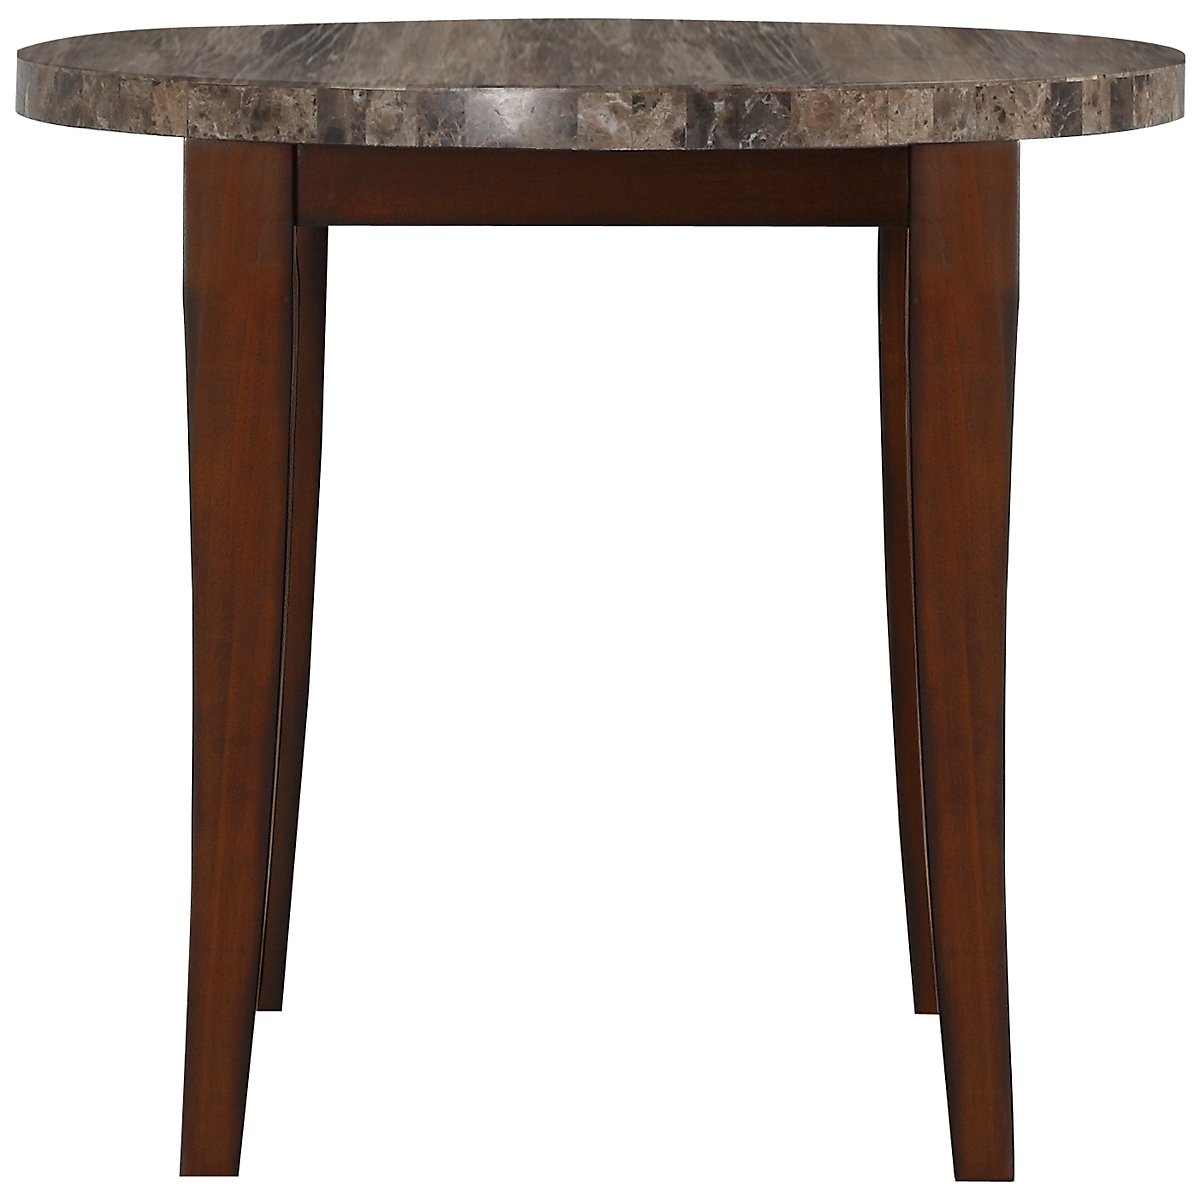 Round dining room tables for 6 for Round dining table for 6